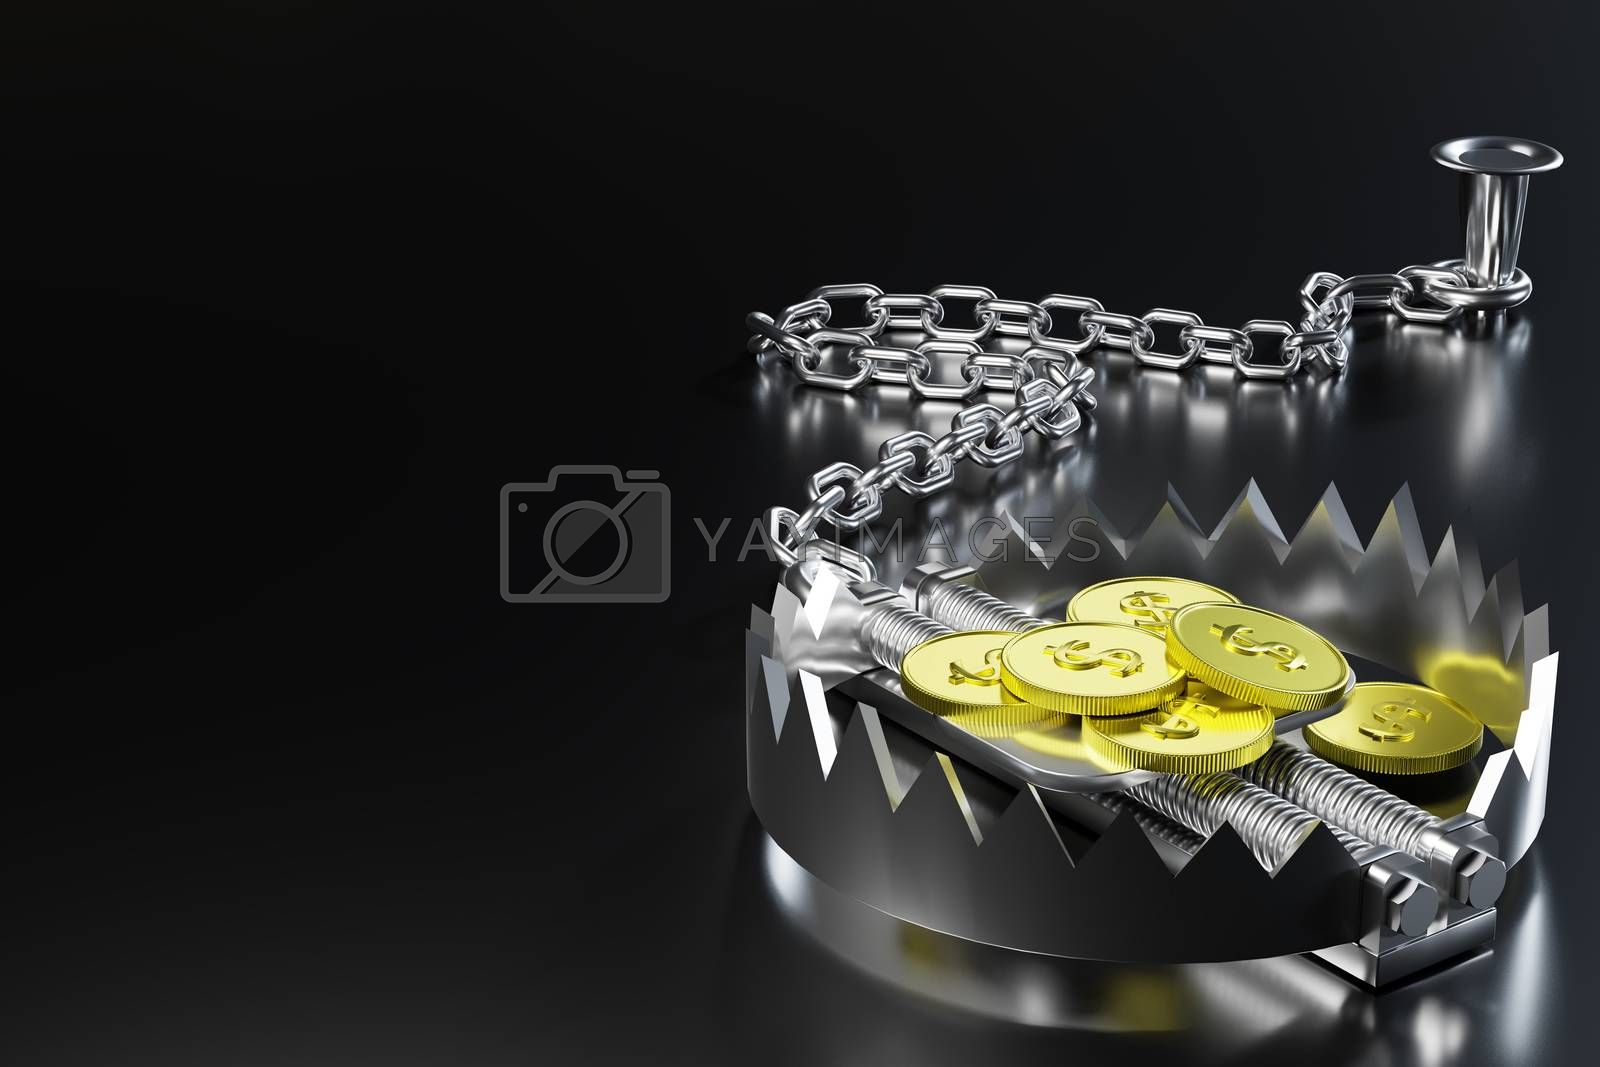 The gold dollar coin is bait in a bear trap and the trap is chained by an iron chain to an anchor in black background. Concept of the danger of pitfall while doing business. 3D illustration rendering.